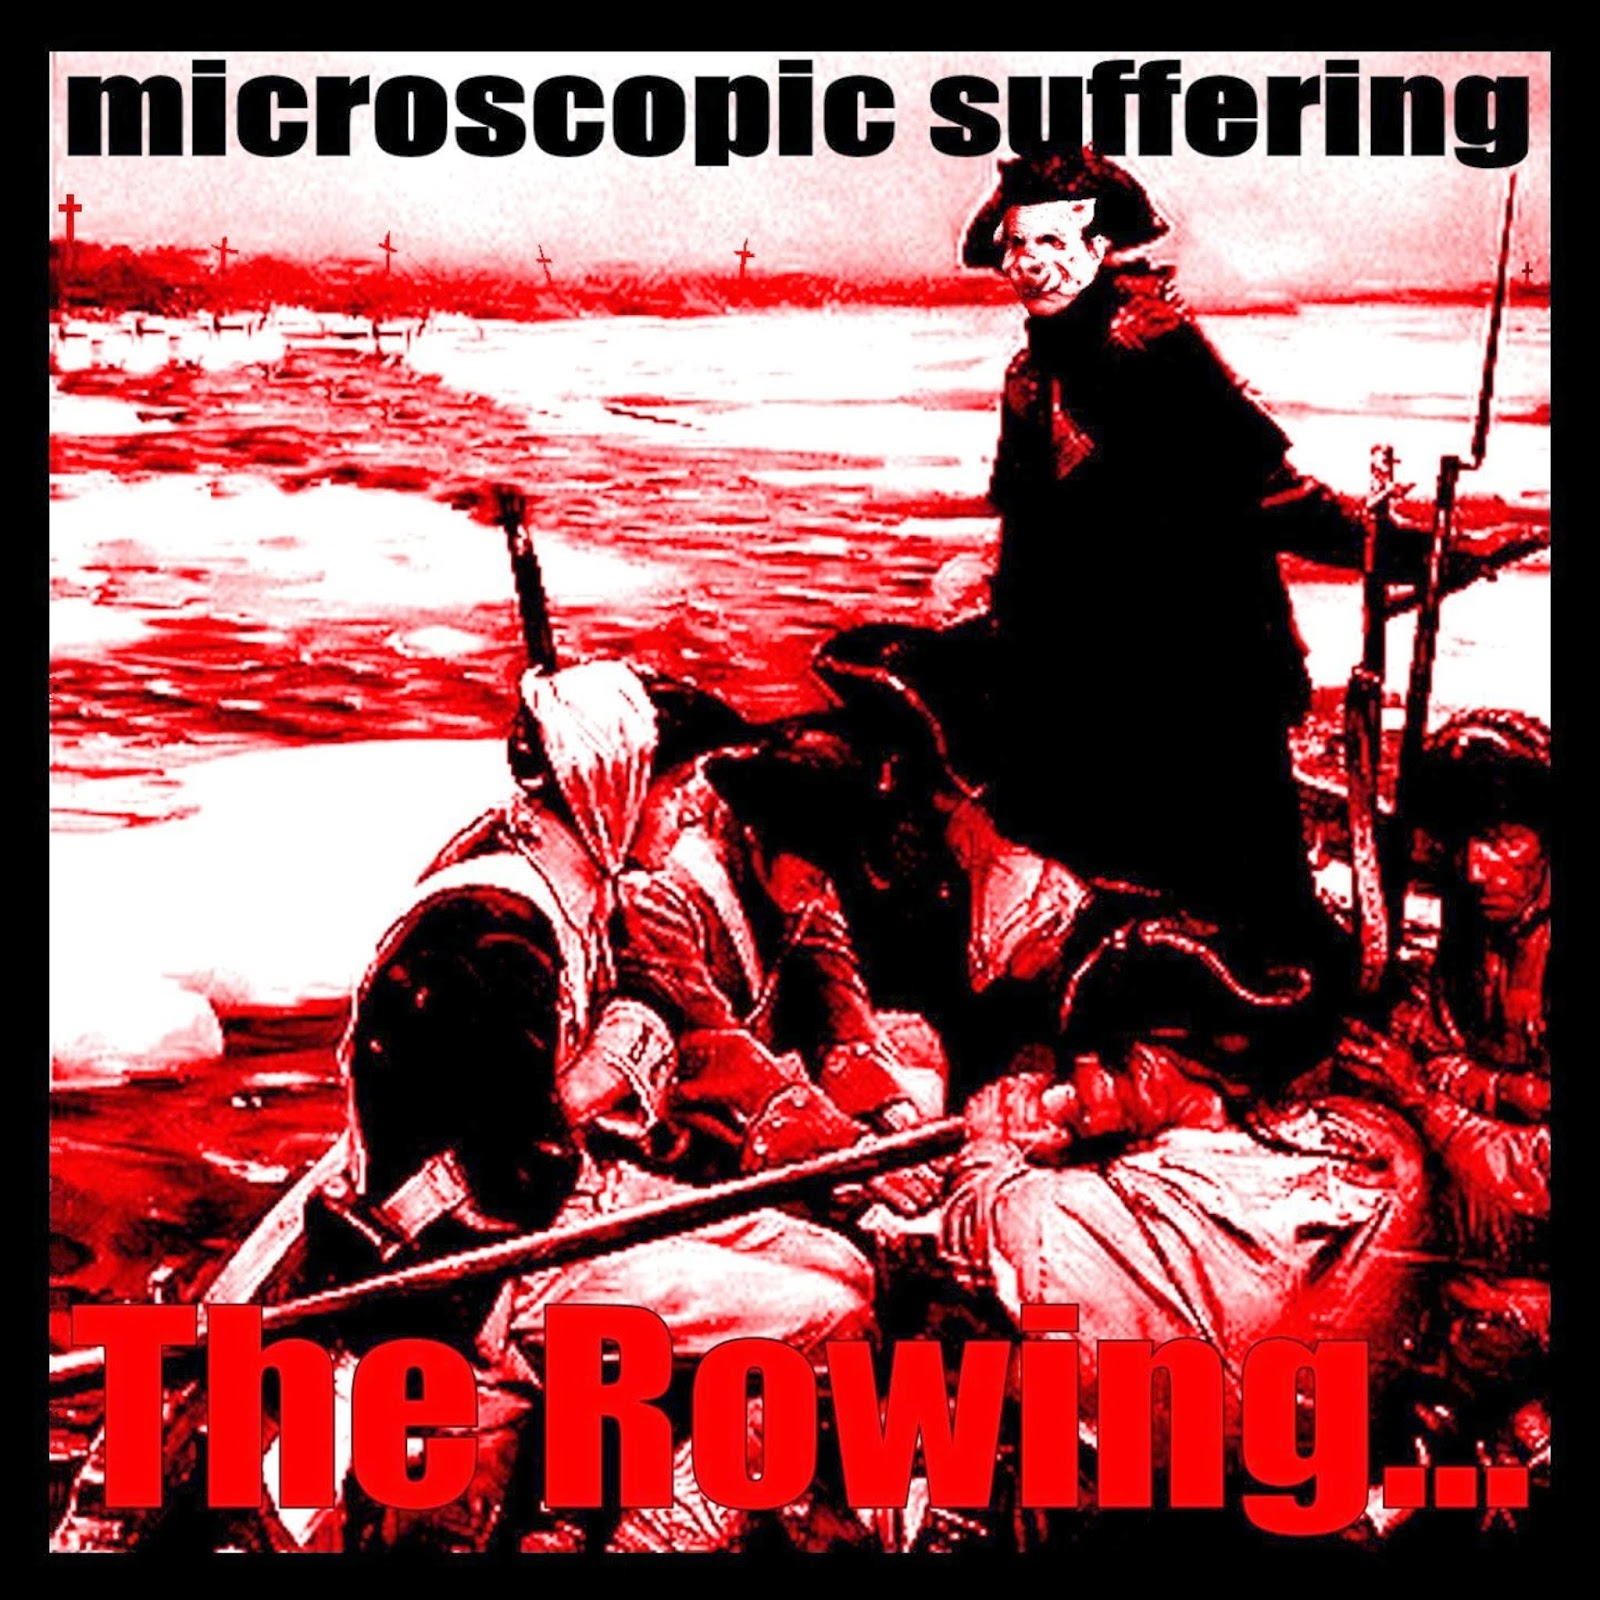 get Microscopic Suffering - The Rowing at Pent Up Release